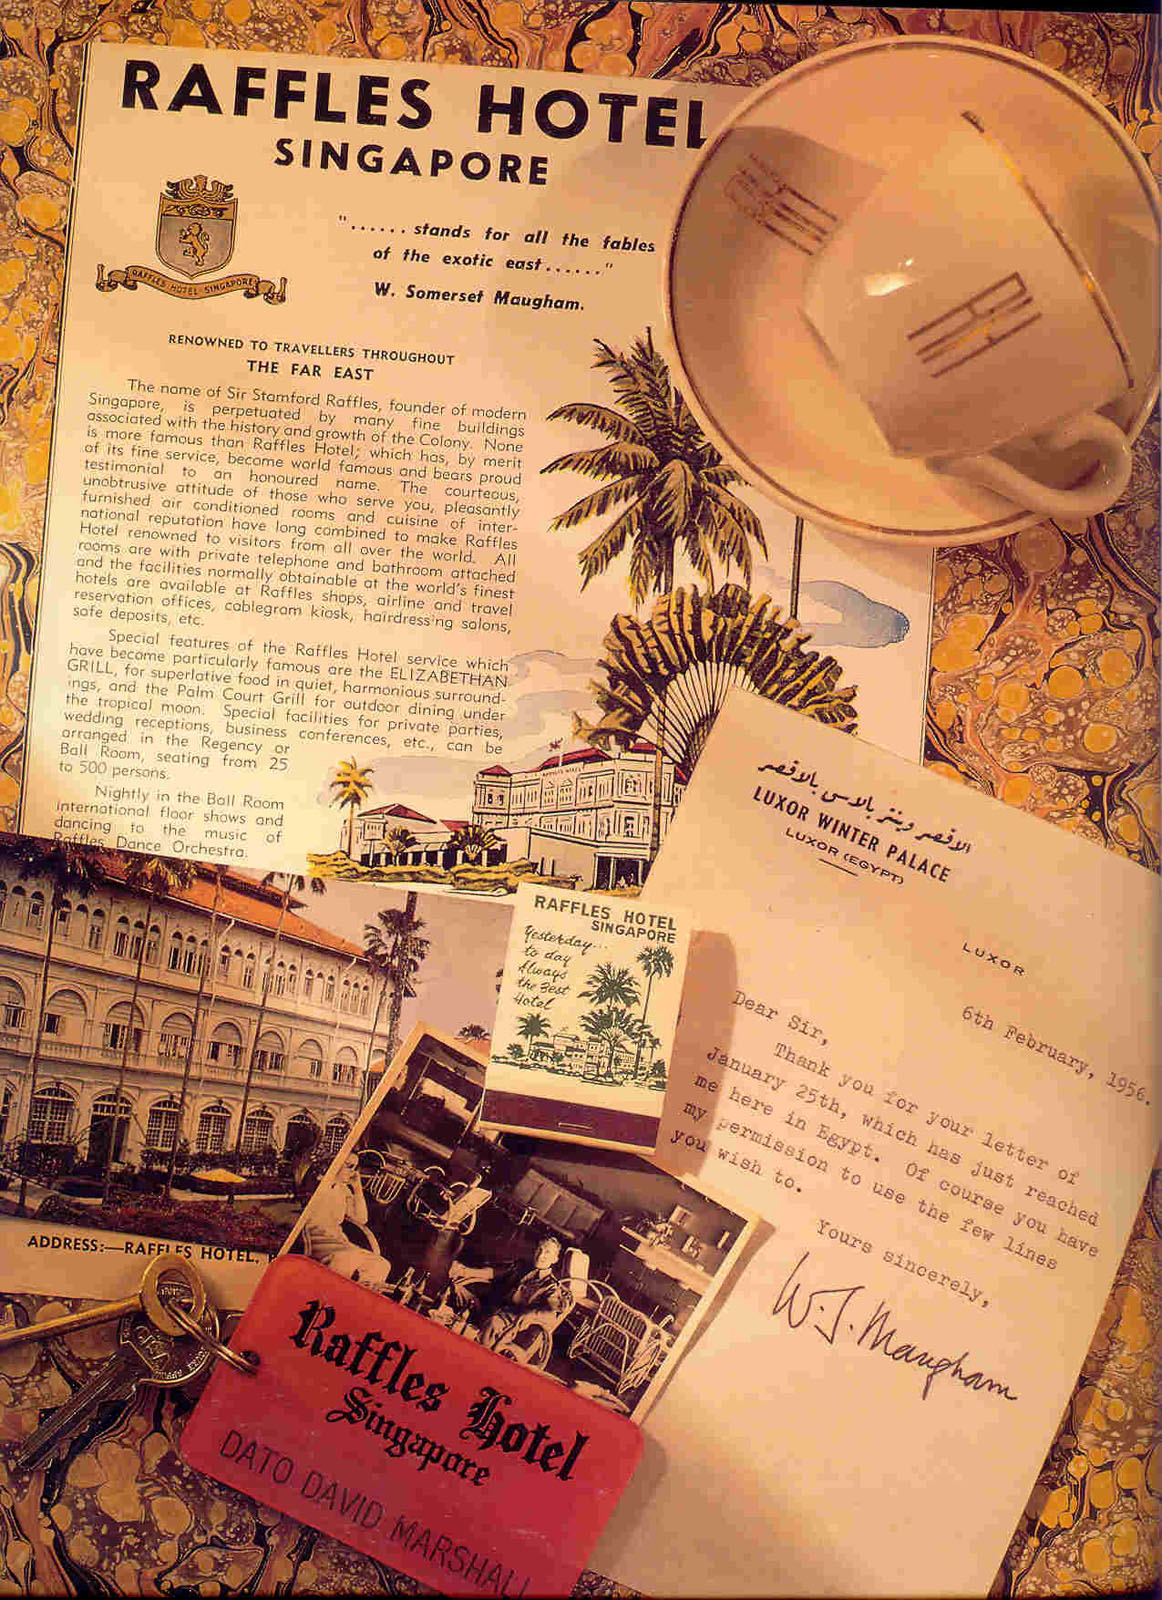 memorabilia related to regular guest Somerset Maugham